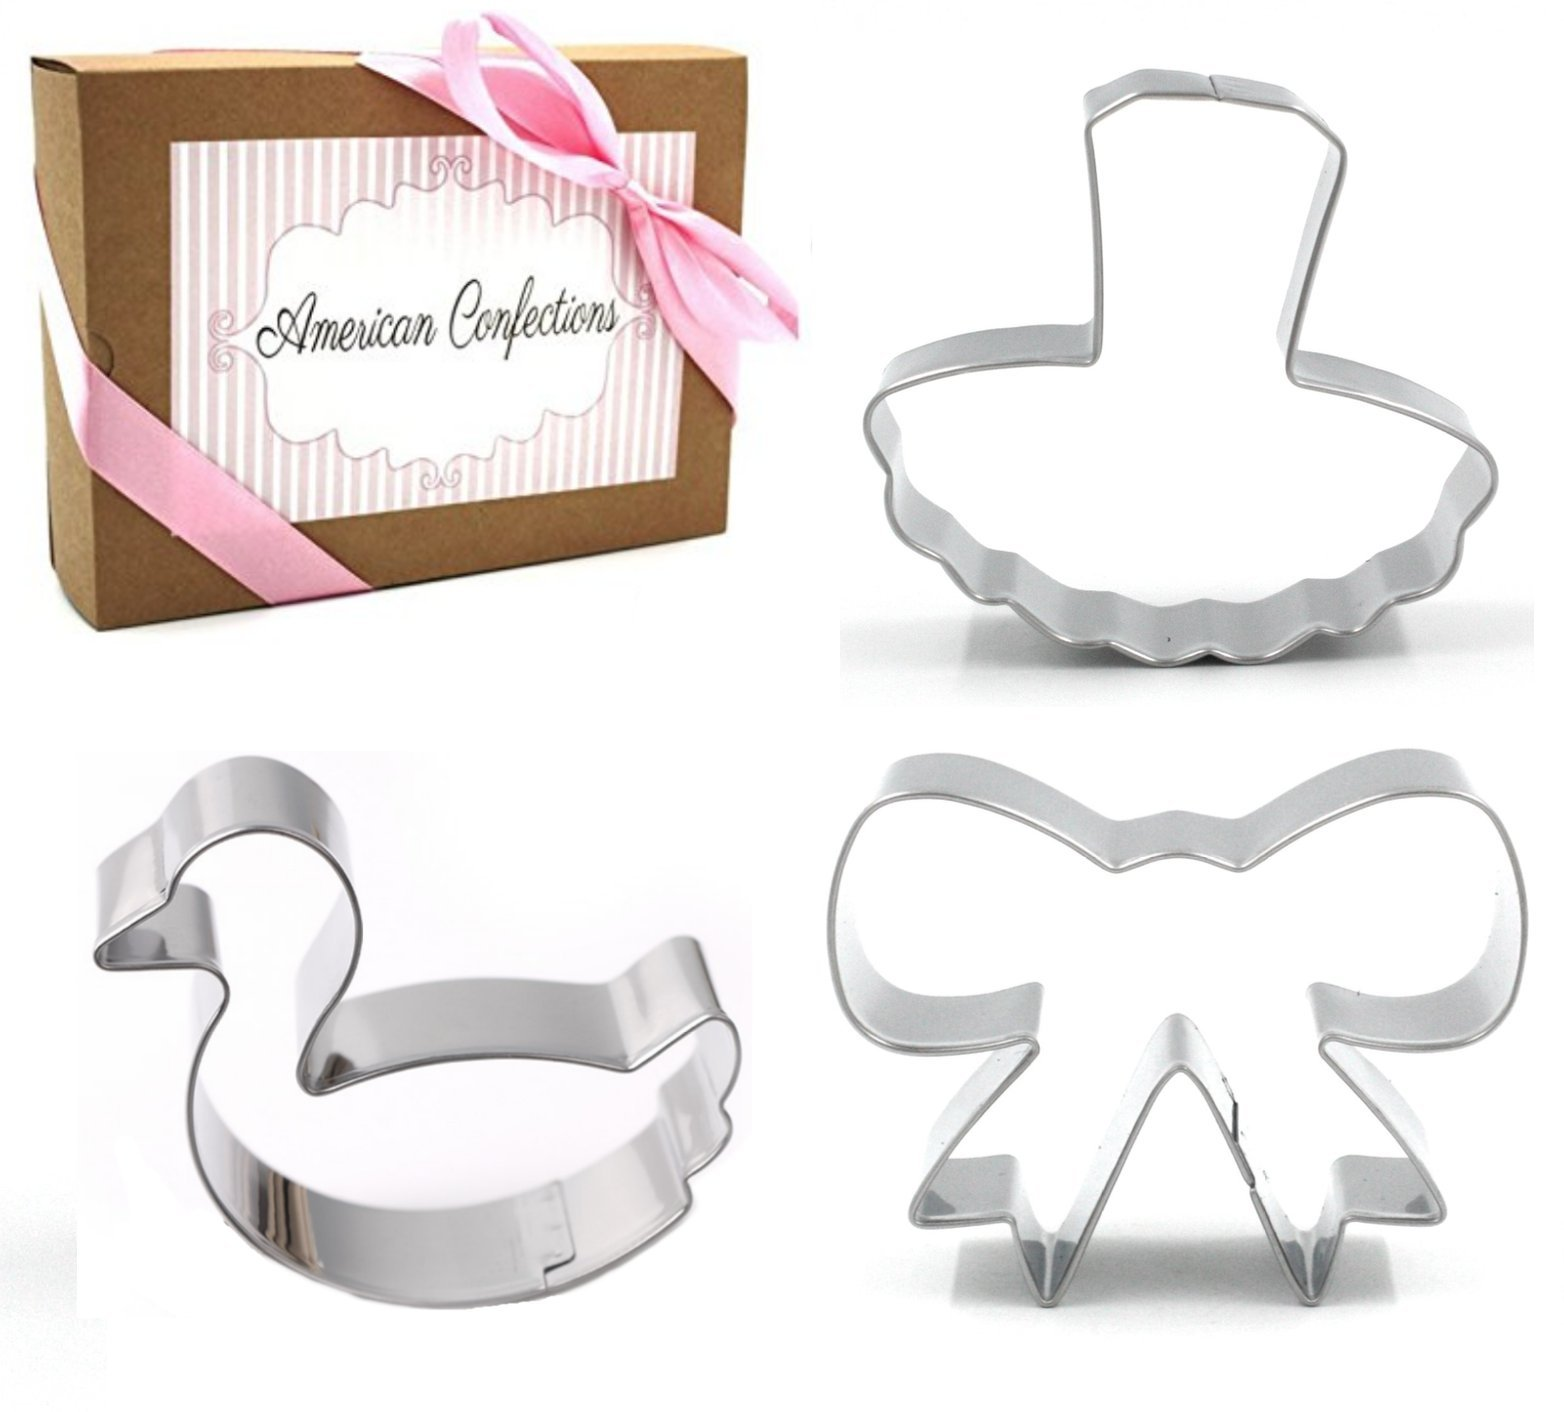 Ballet Dance Cookie Cutter - American Confections - Swan, Bow, Ballerina, Tutu - Set of 3